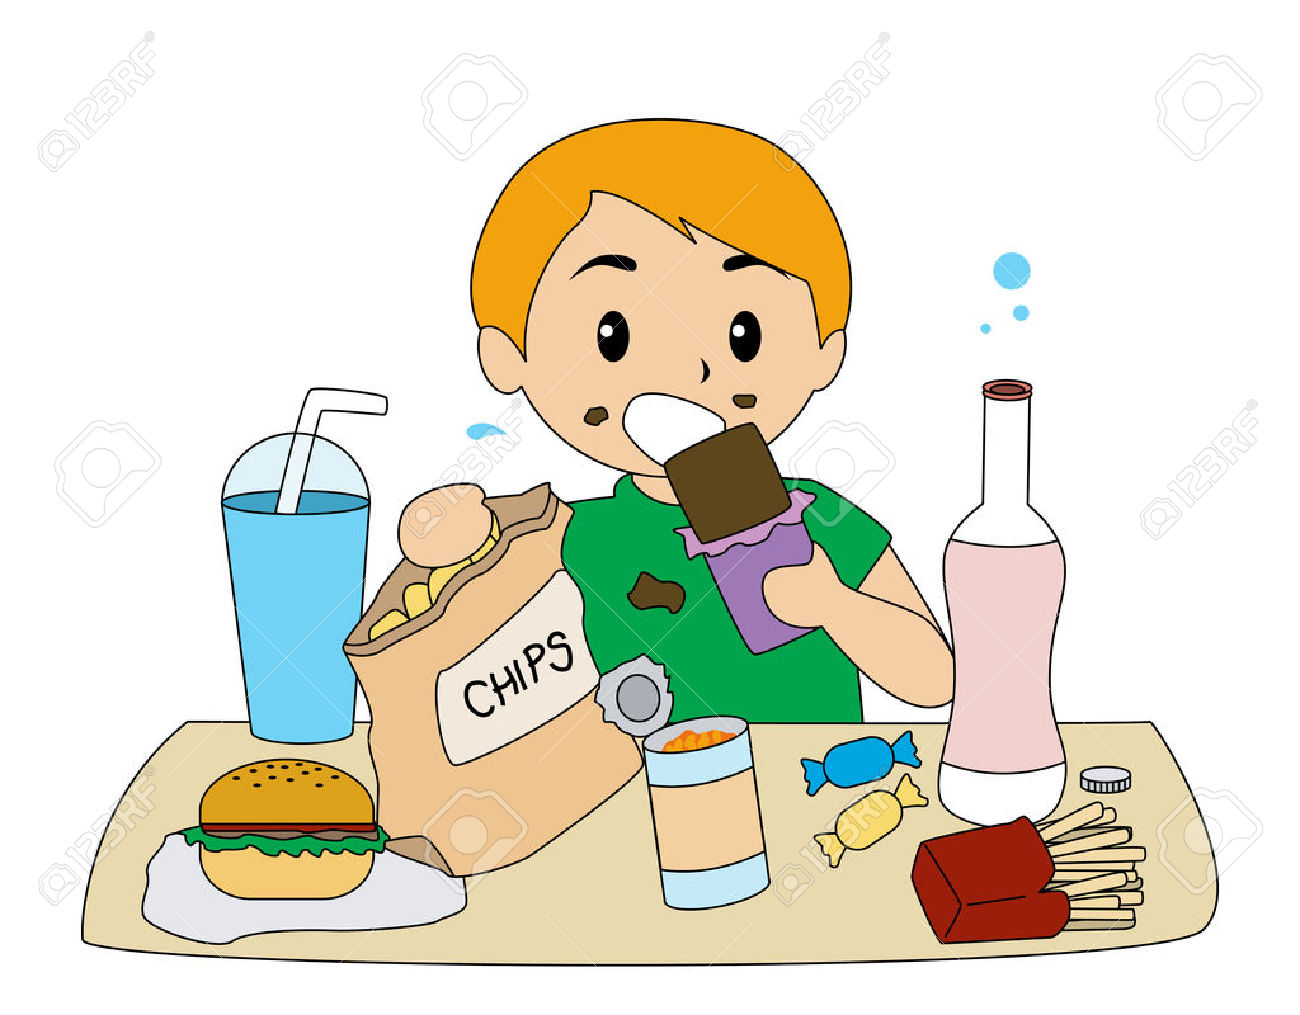 Eat food clipart - Clipground